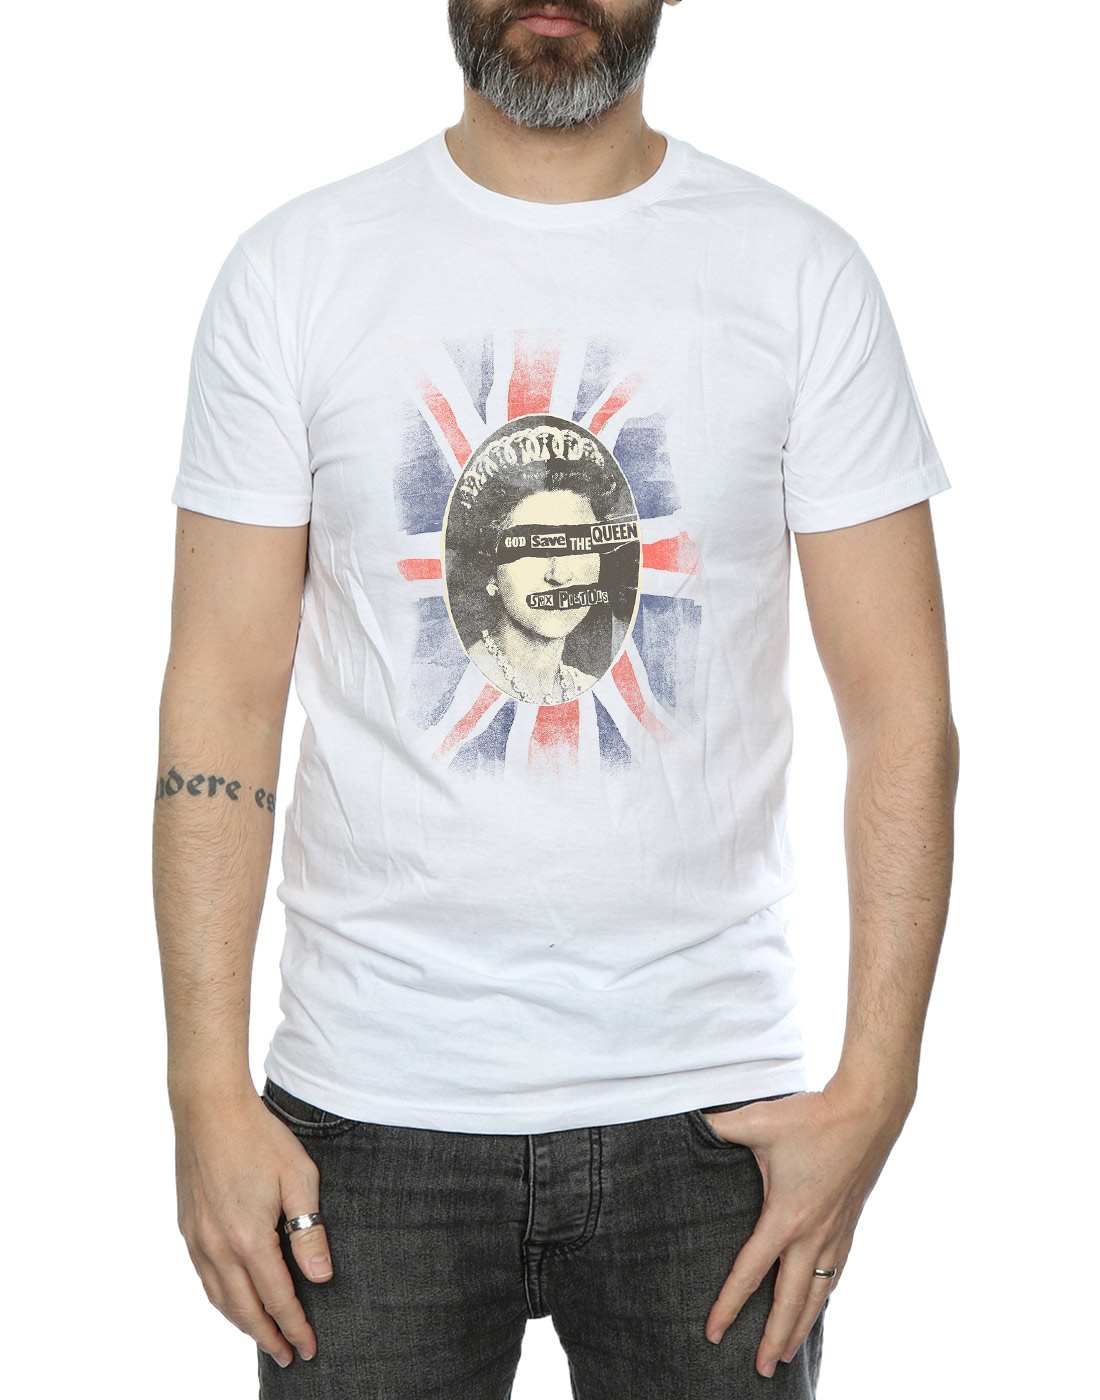 SEX-Pistols-UOMO-GOD-SAVE-THE-QUEEN-t-shirt miniatura 19